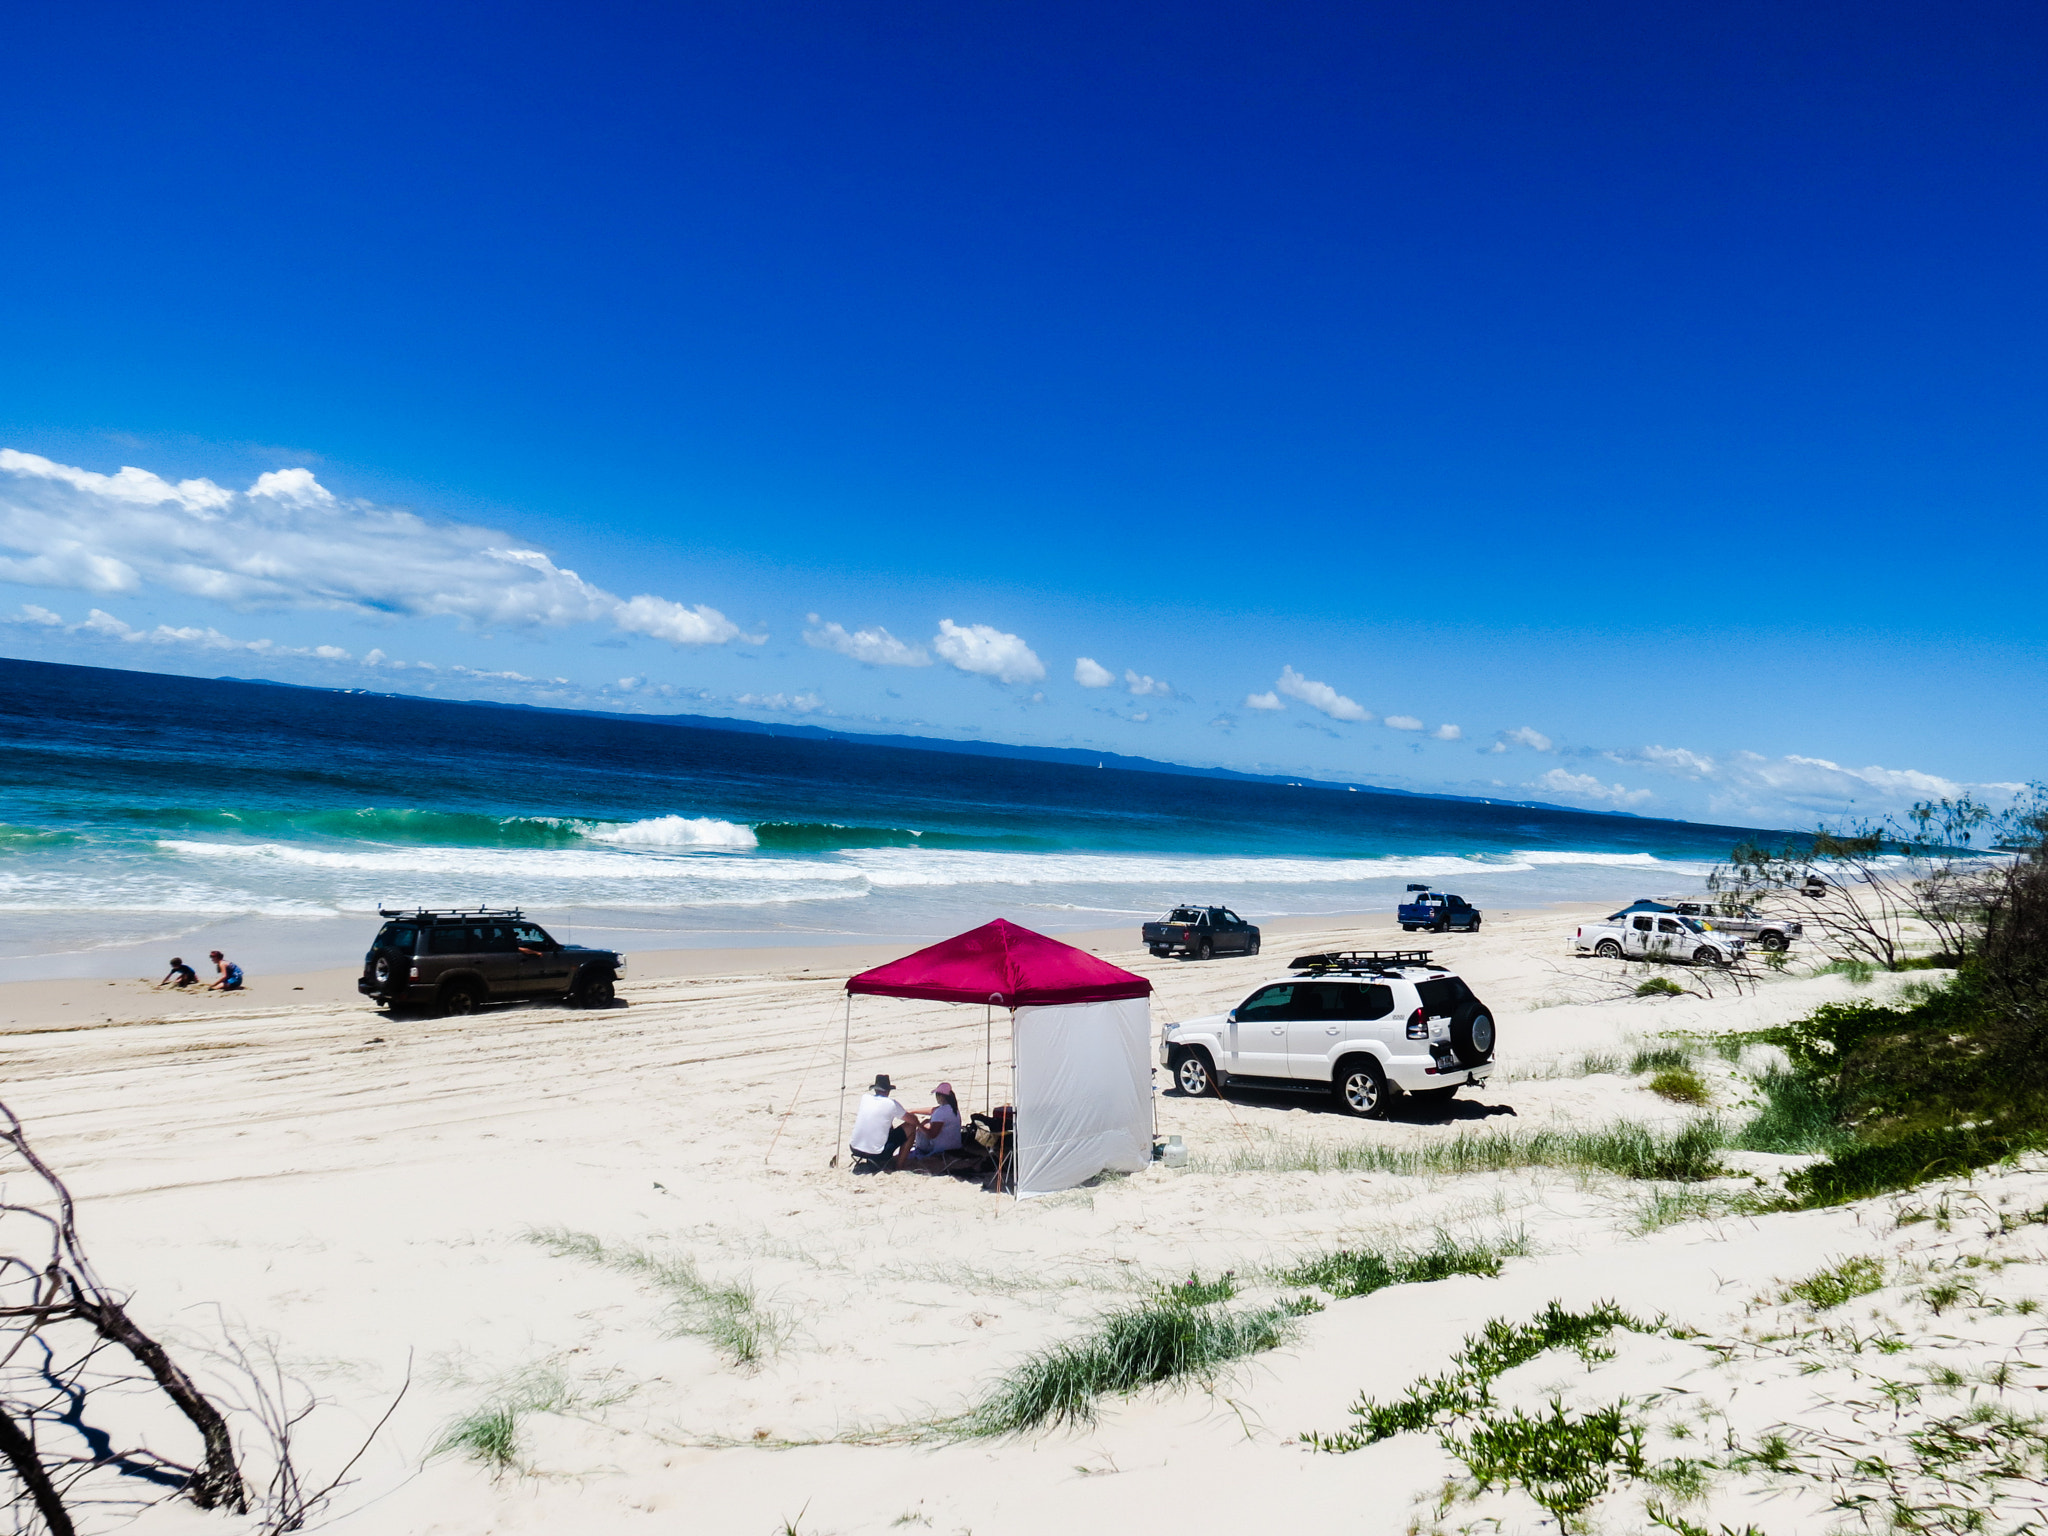 File:On Bribie Beach Australia (145417691).jpeg - Wikipedia